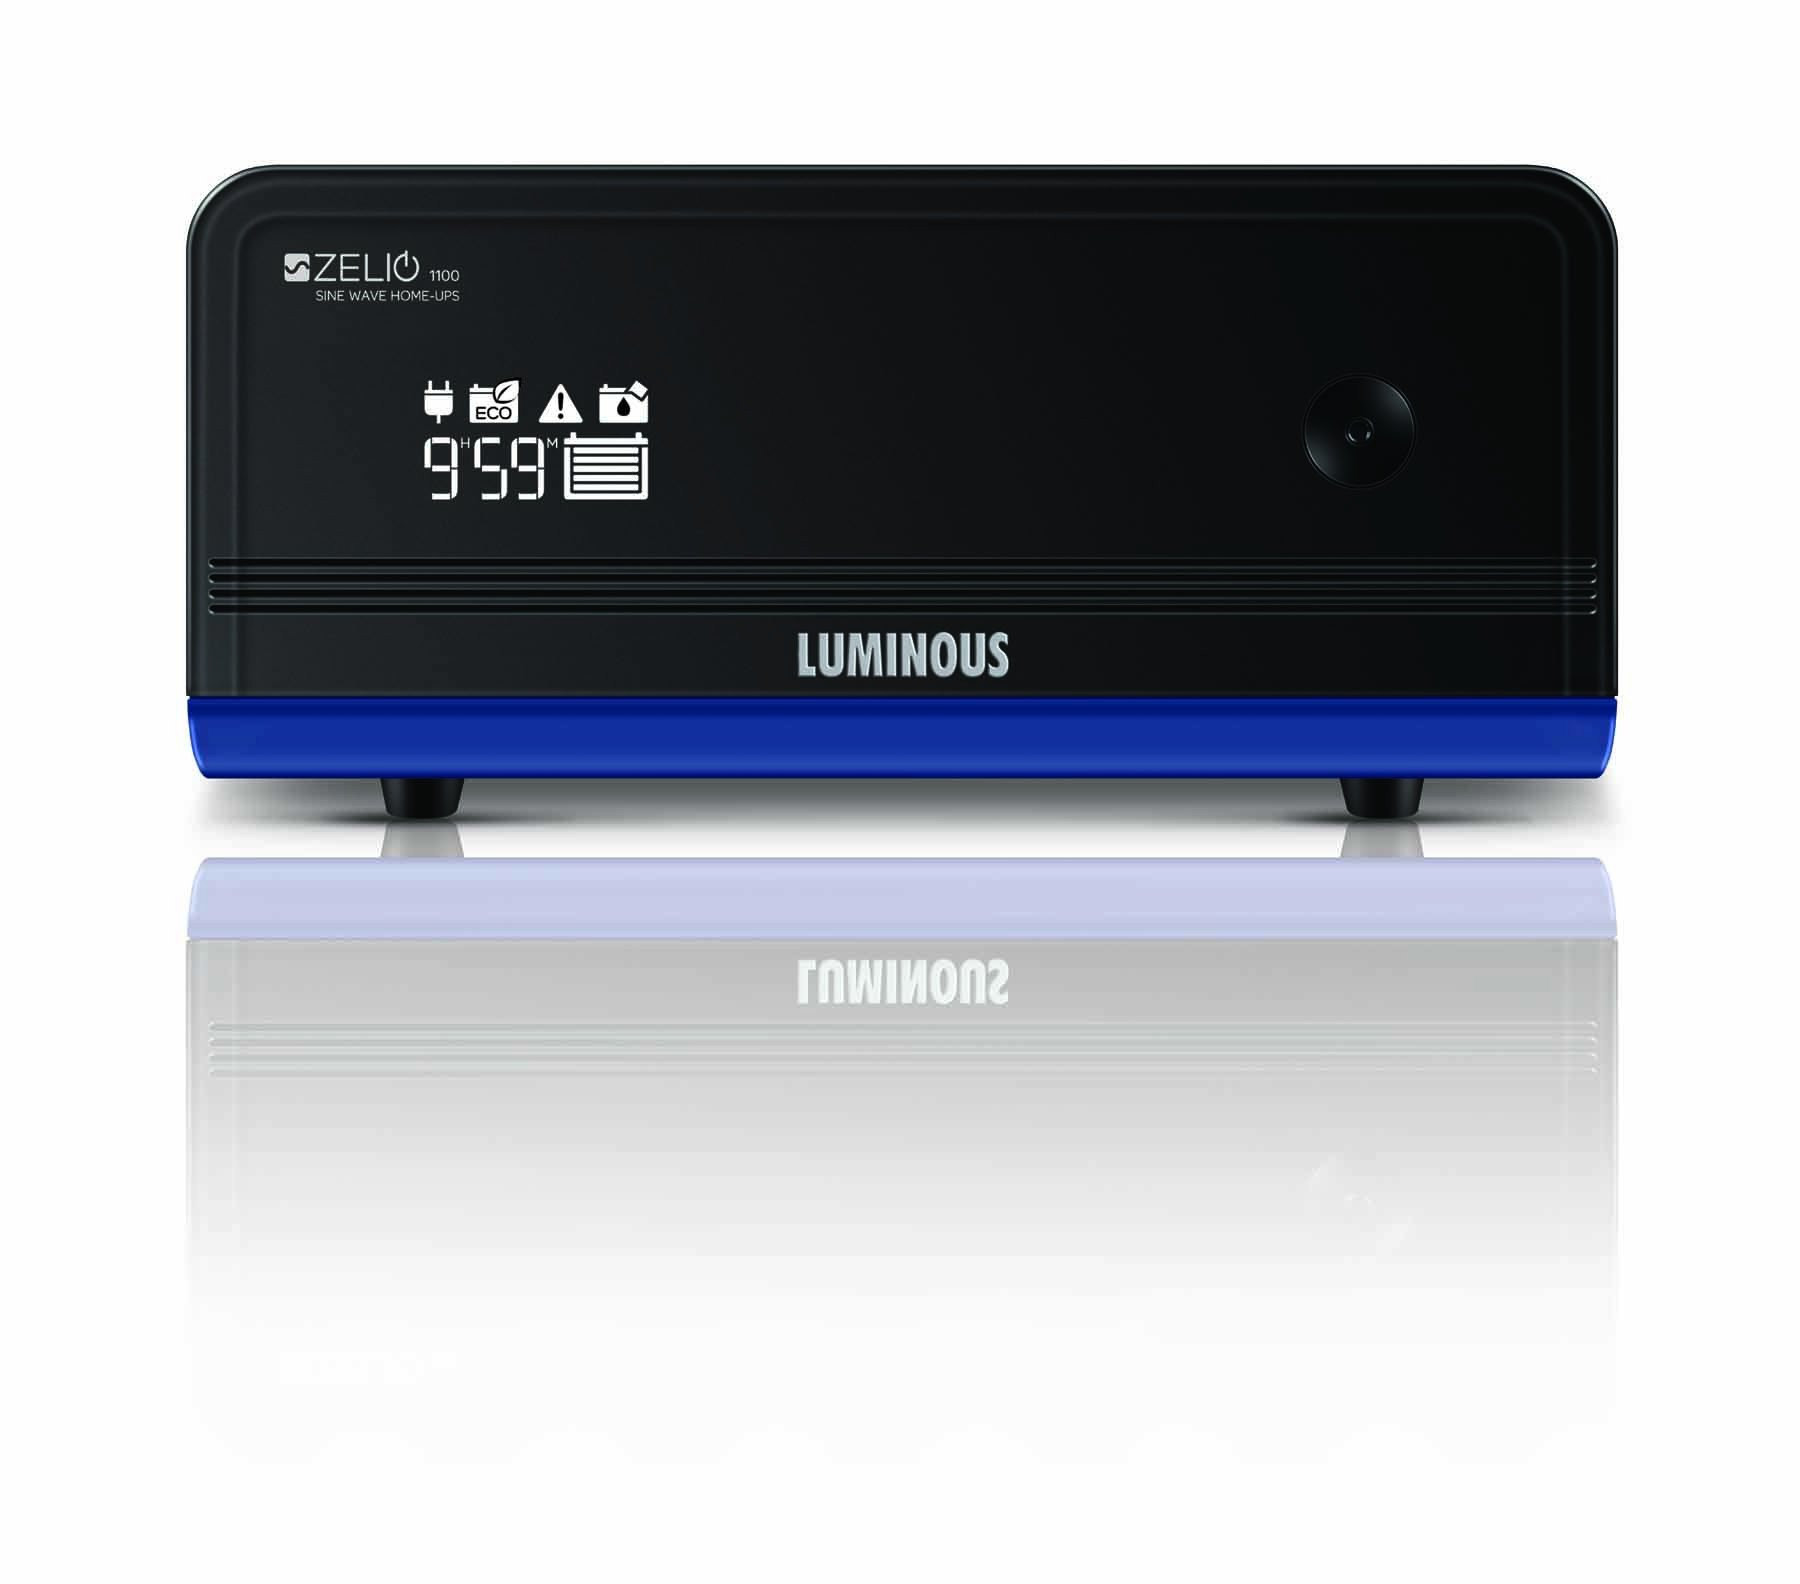 Luminous Zelio 1100va+ Home UPS Inverter Pure Sinewave 2 Years warranty